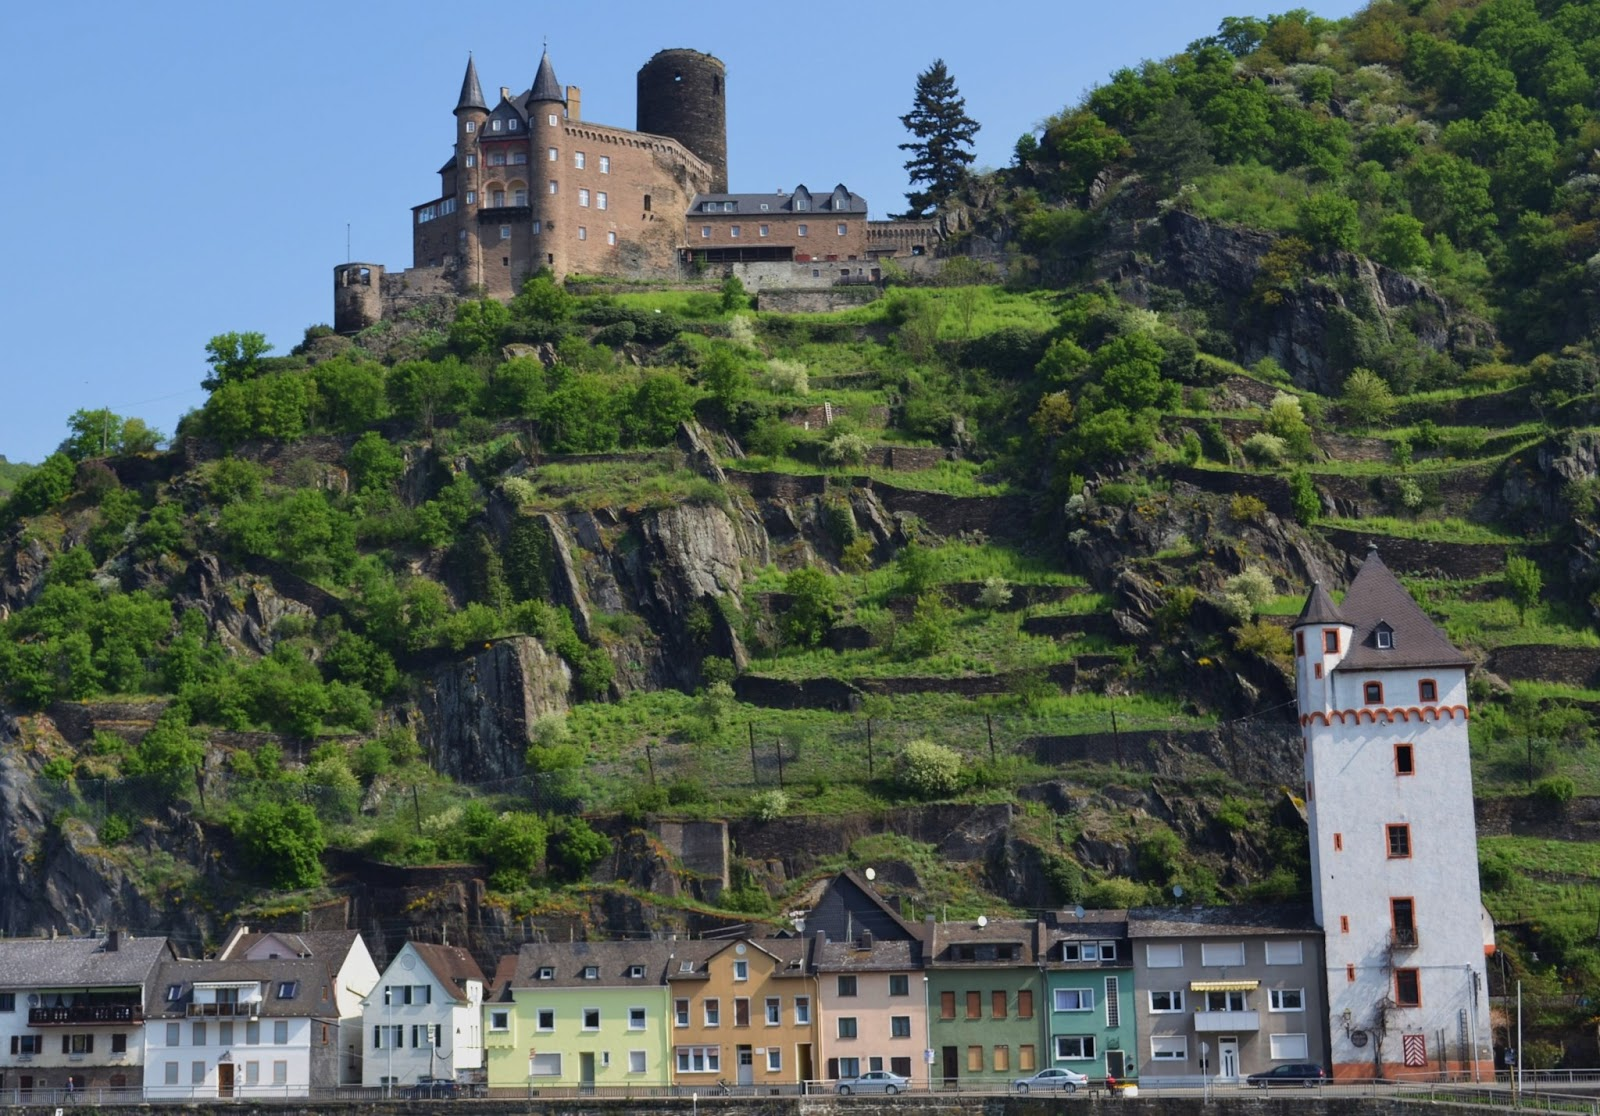 American Homestead: Cruising Along the Romantic Rhine